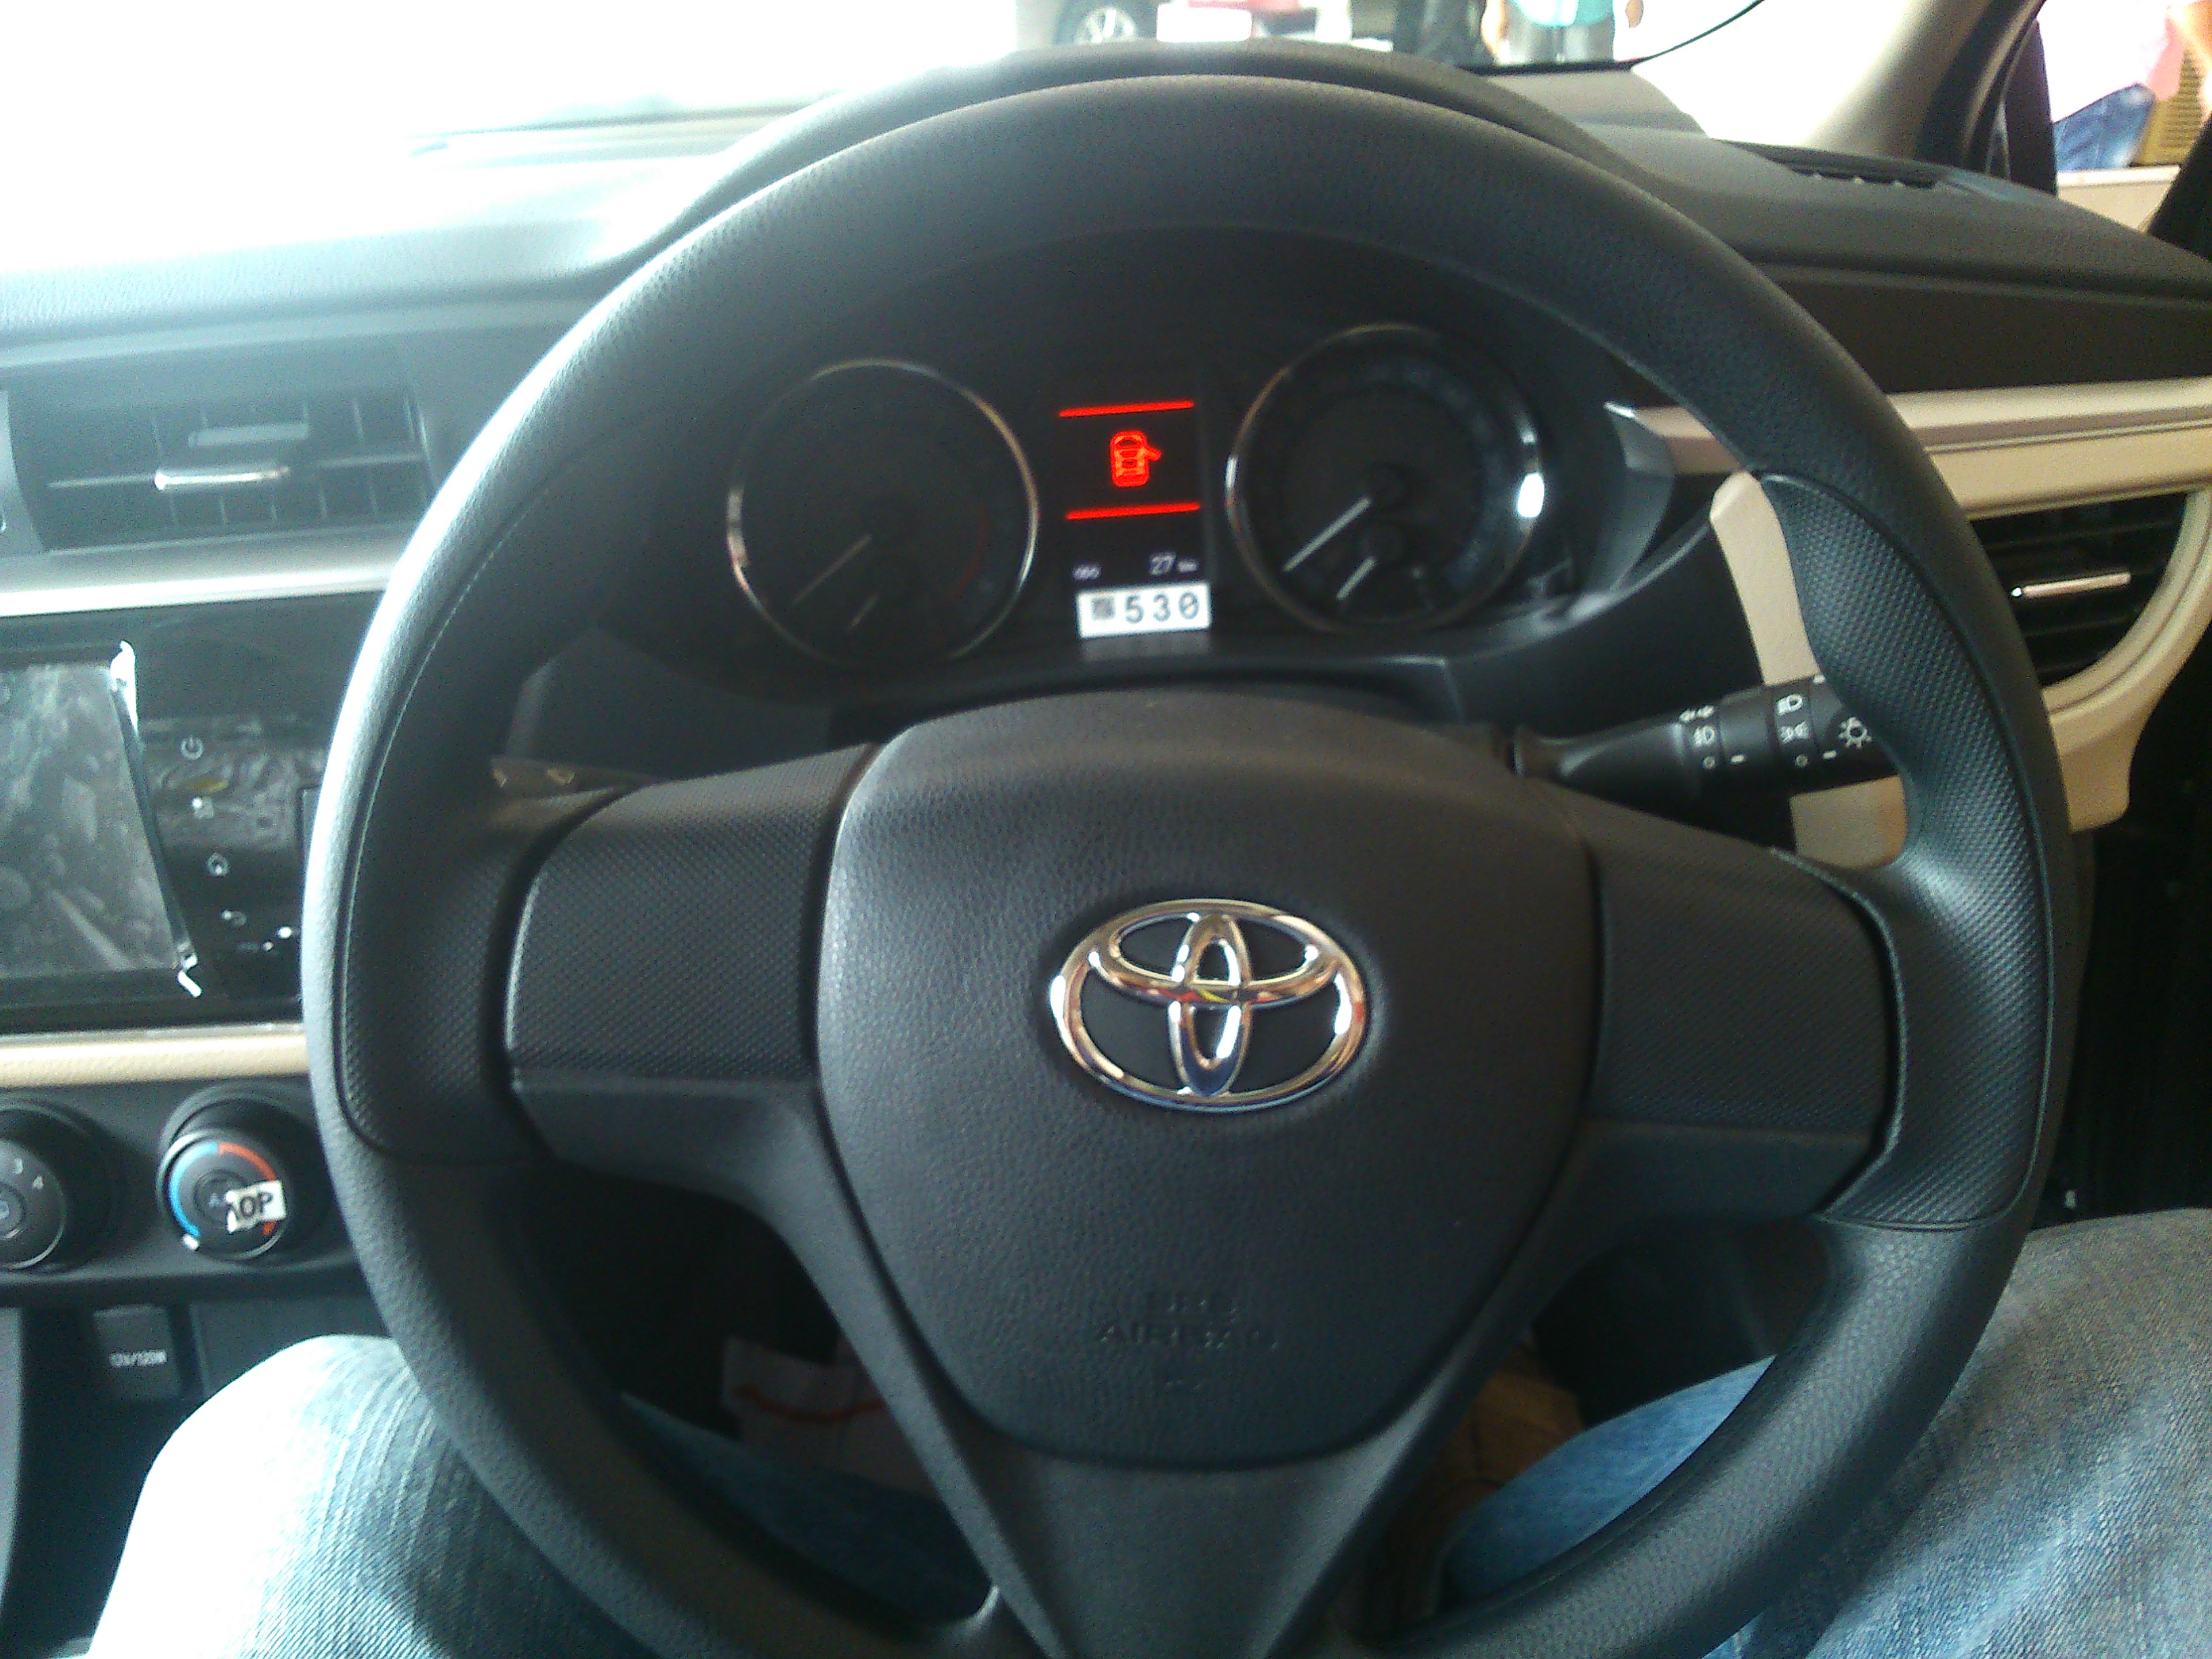 Toyota corolla 2014 dealership review